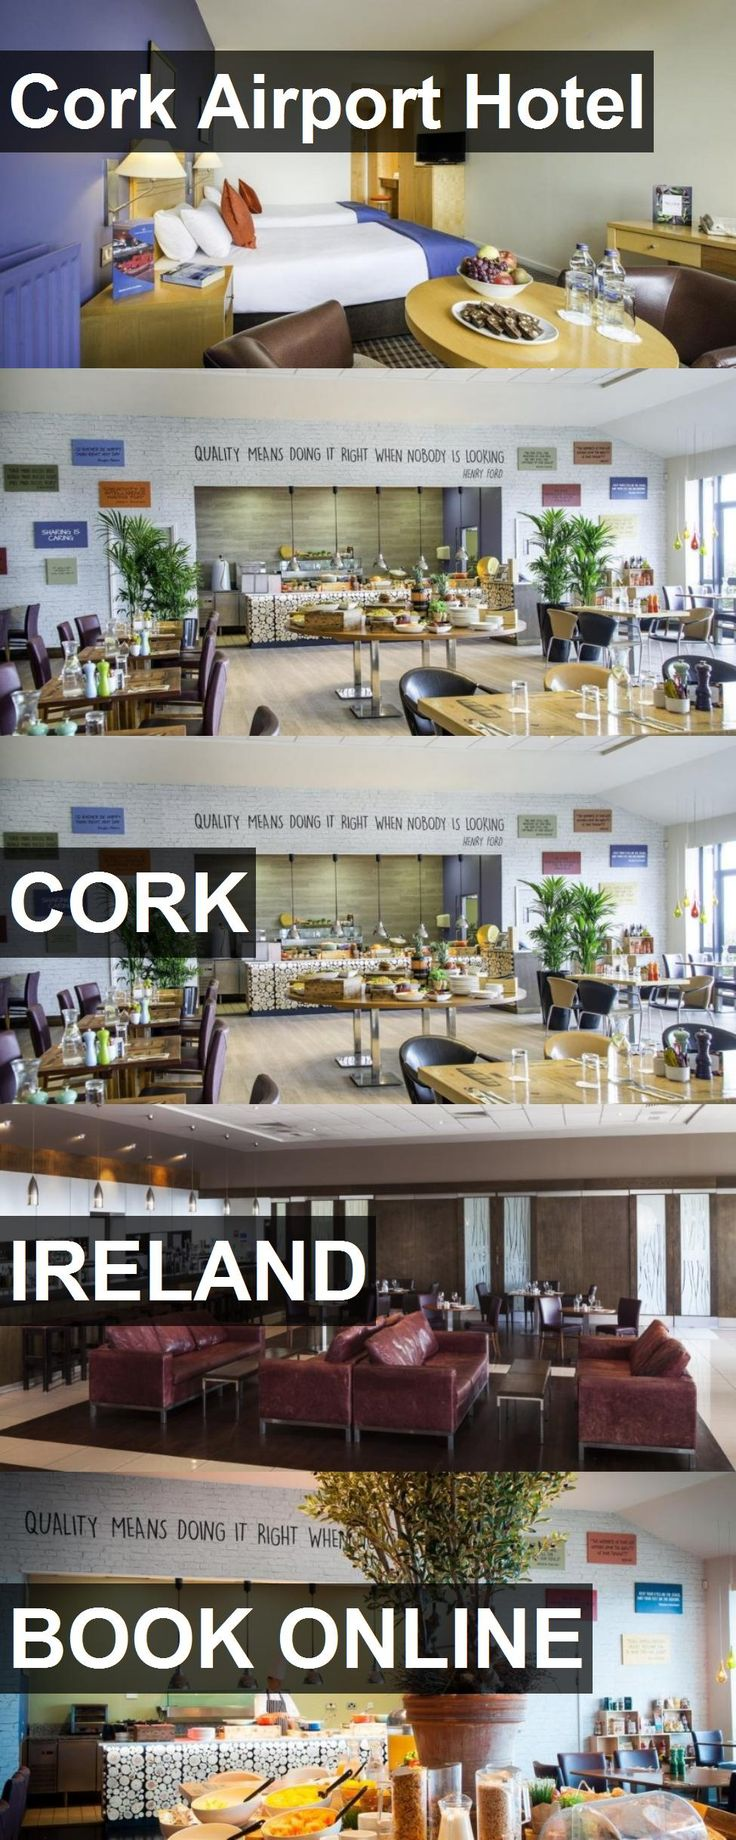 Cork Airport Hotel in Cork, Ireland. For more information, photos, reviews and best prices please follow the link. #Ireland #Cork #travel #vacation #hotel